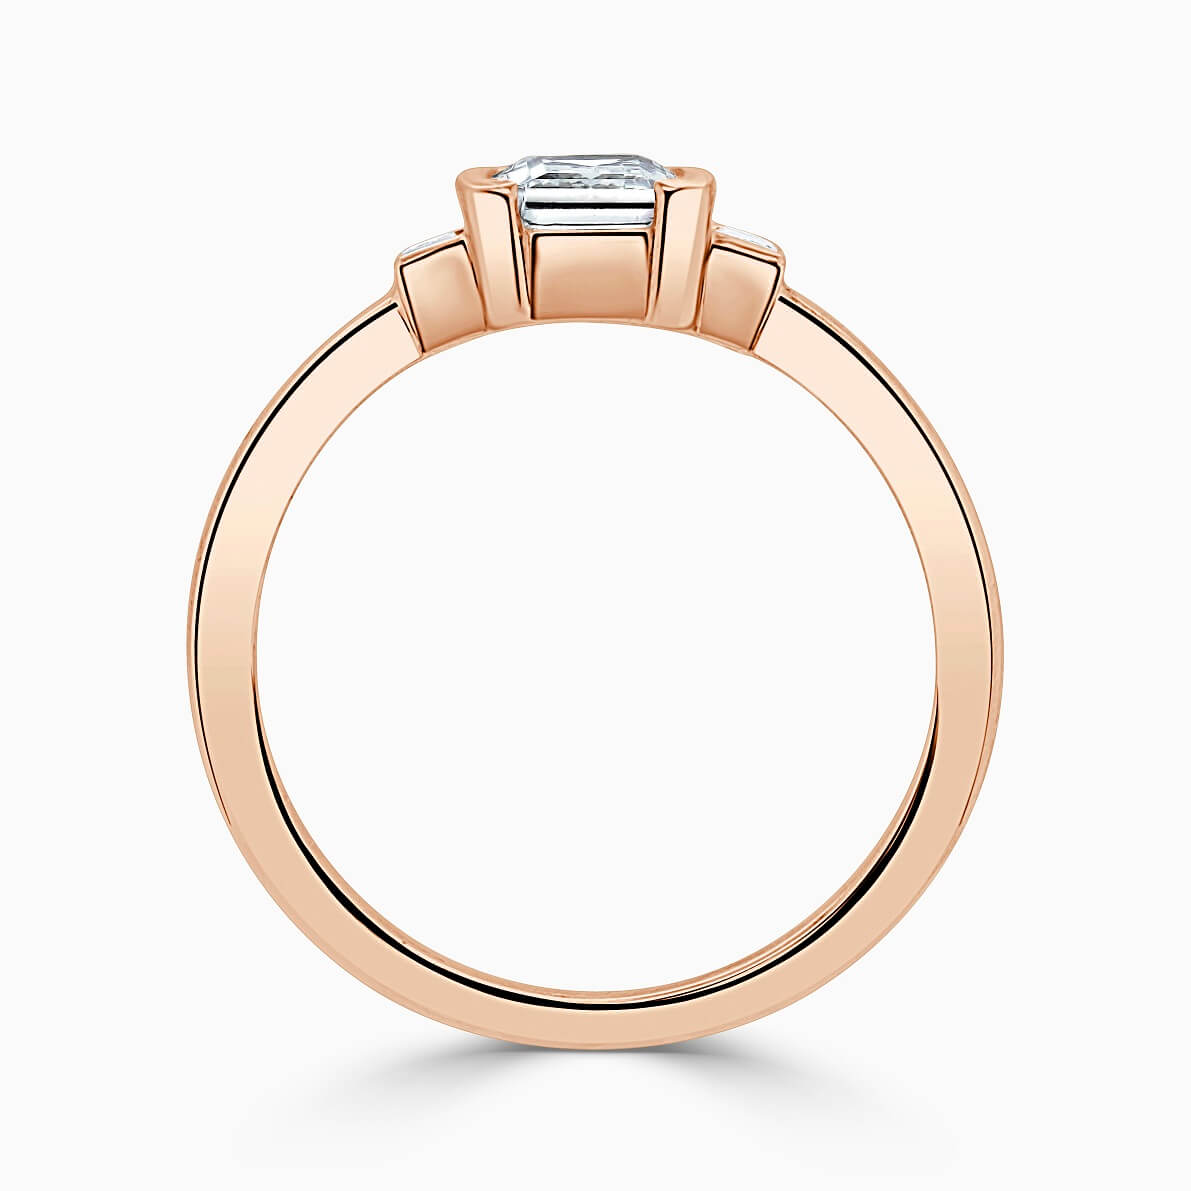 18ct Rose Gold Radiant Cut Art Deco 3 Stone With Baguettes Engagement Ring